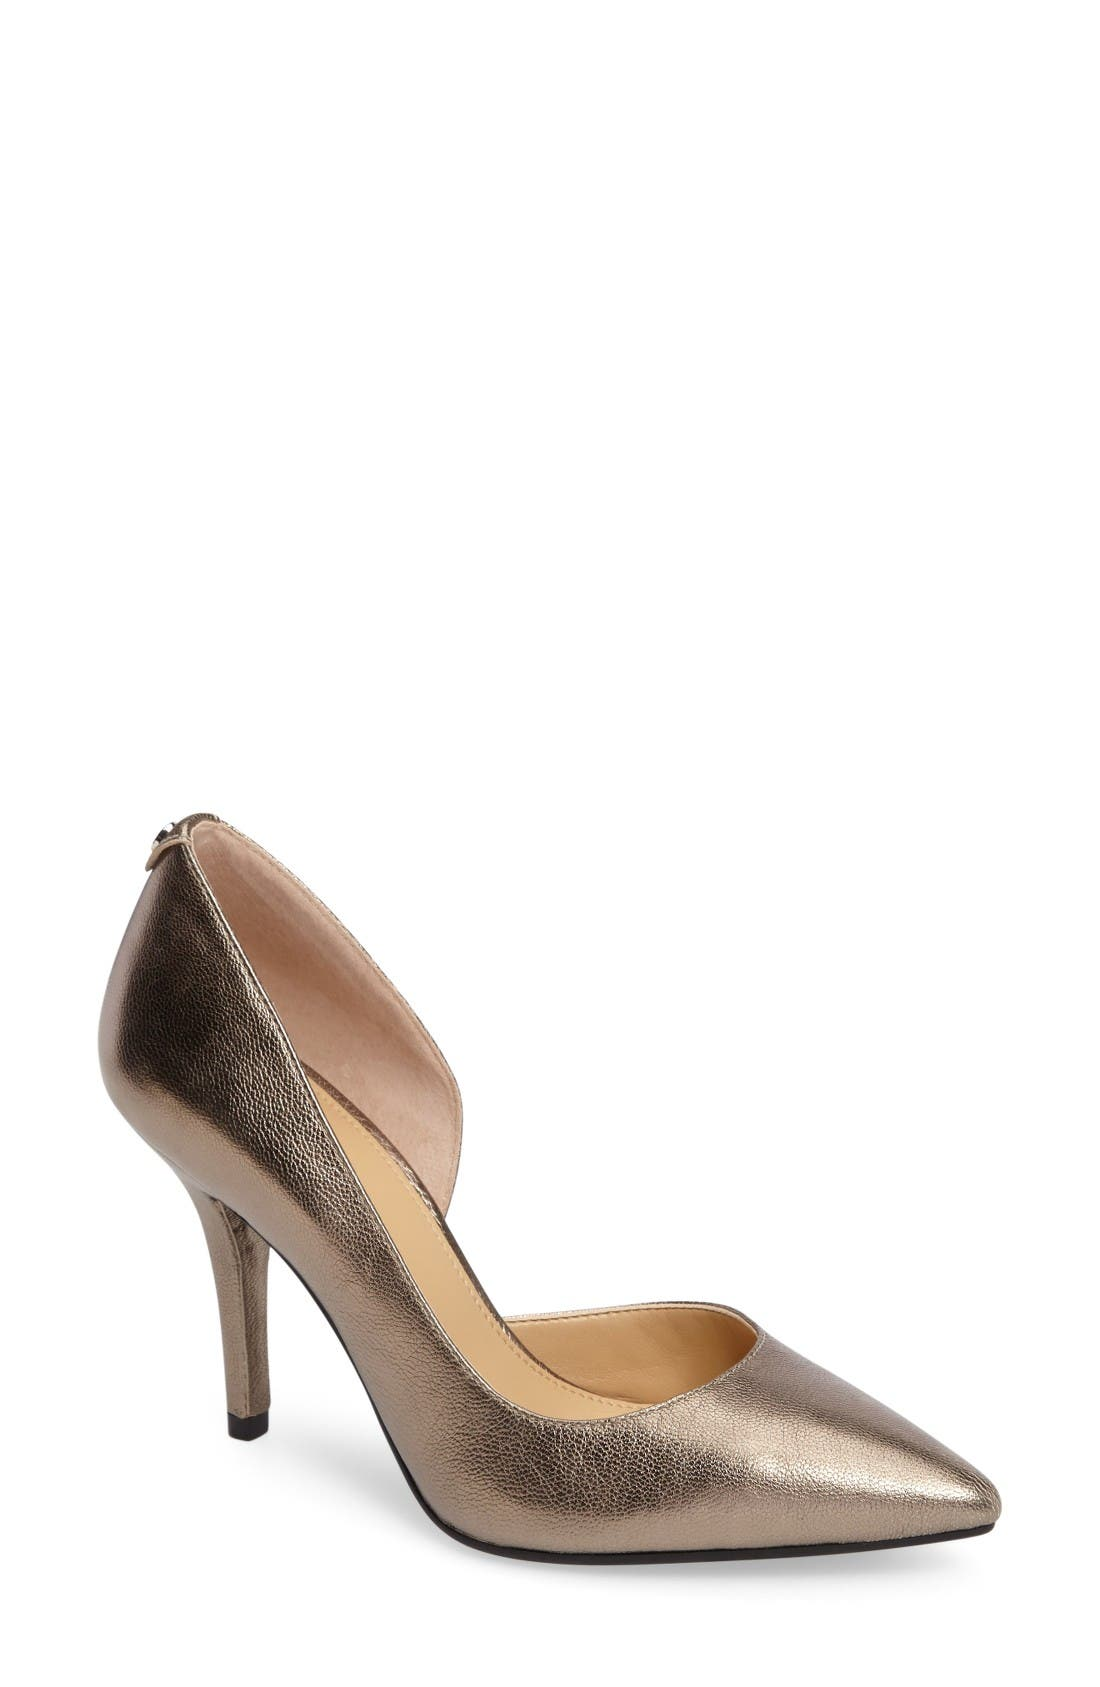 Nathalie Demi d'Orsay Pointy Toe Pump,                             Main thumbnail 1, color,                             Nickel